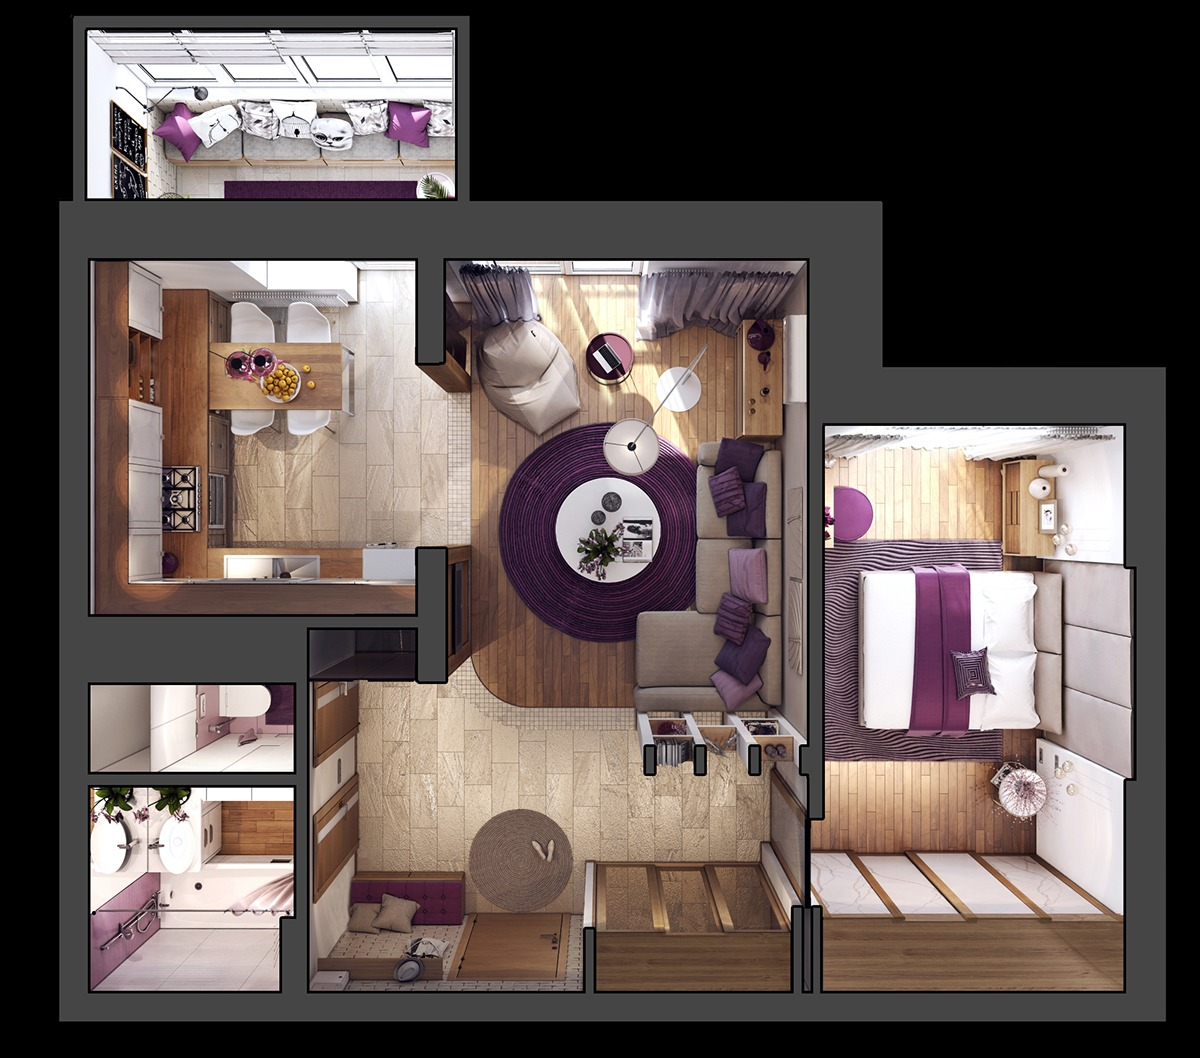 D Floor Plan For Medium Sized Apartment - 3 one bedroom apartments under 750 square feet 70 square metres includes layouts